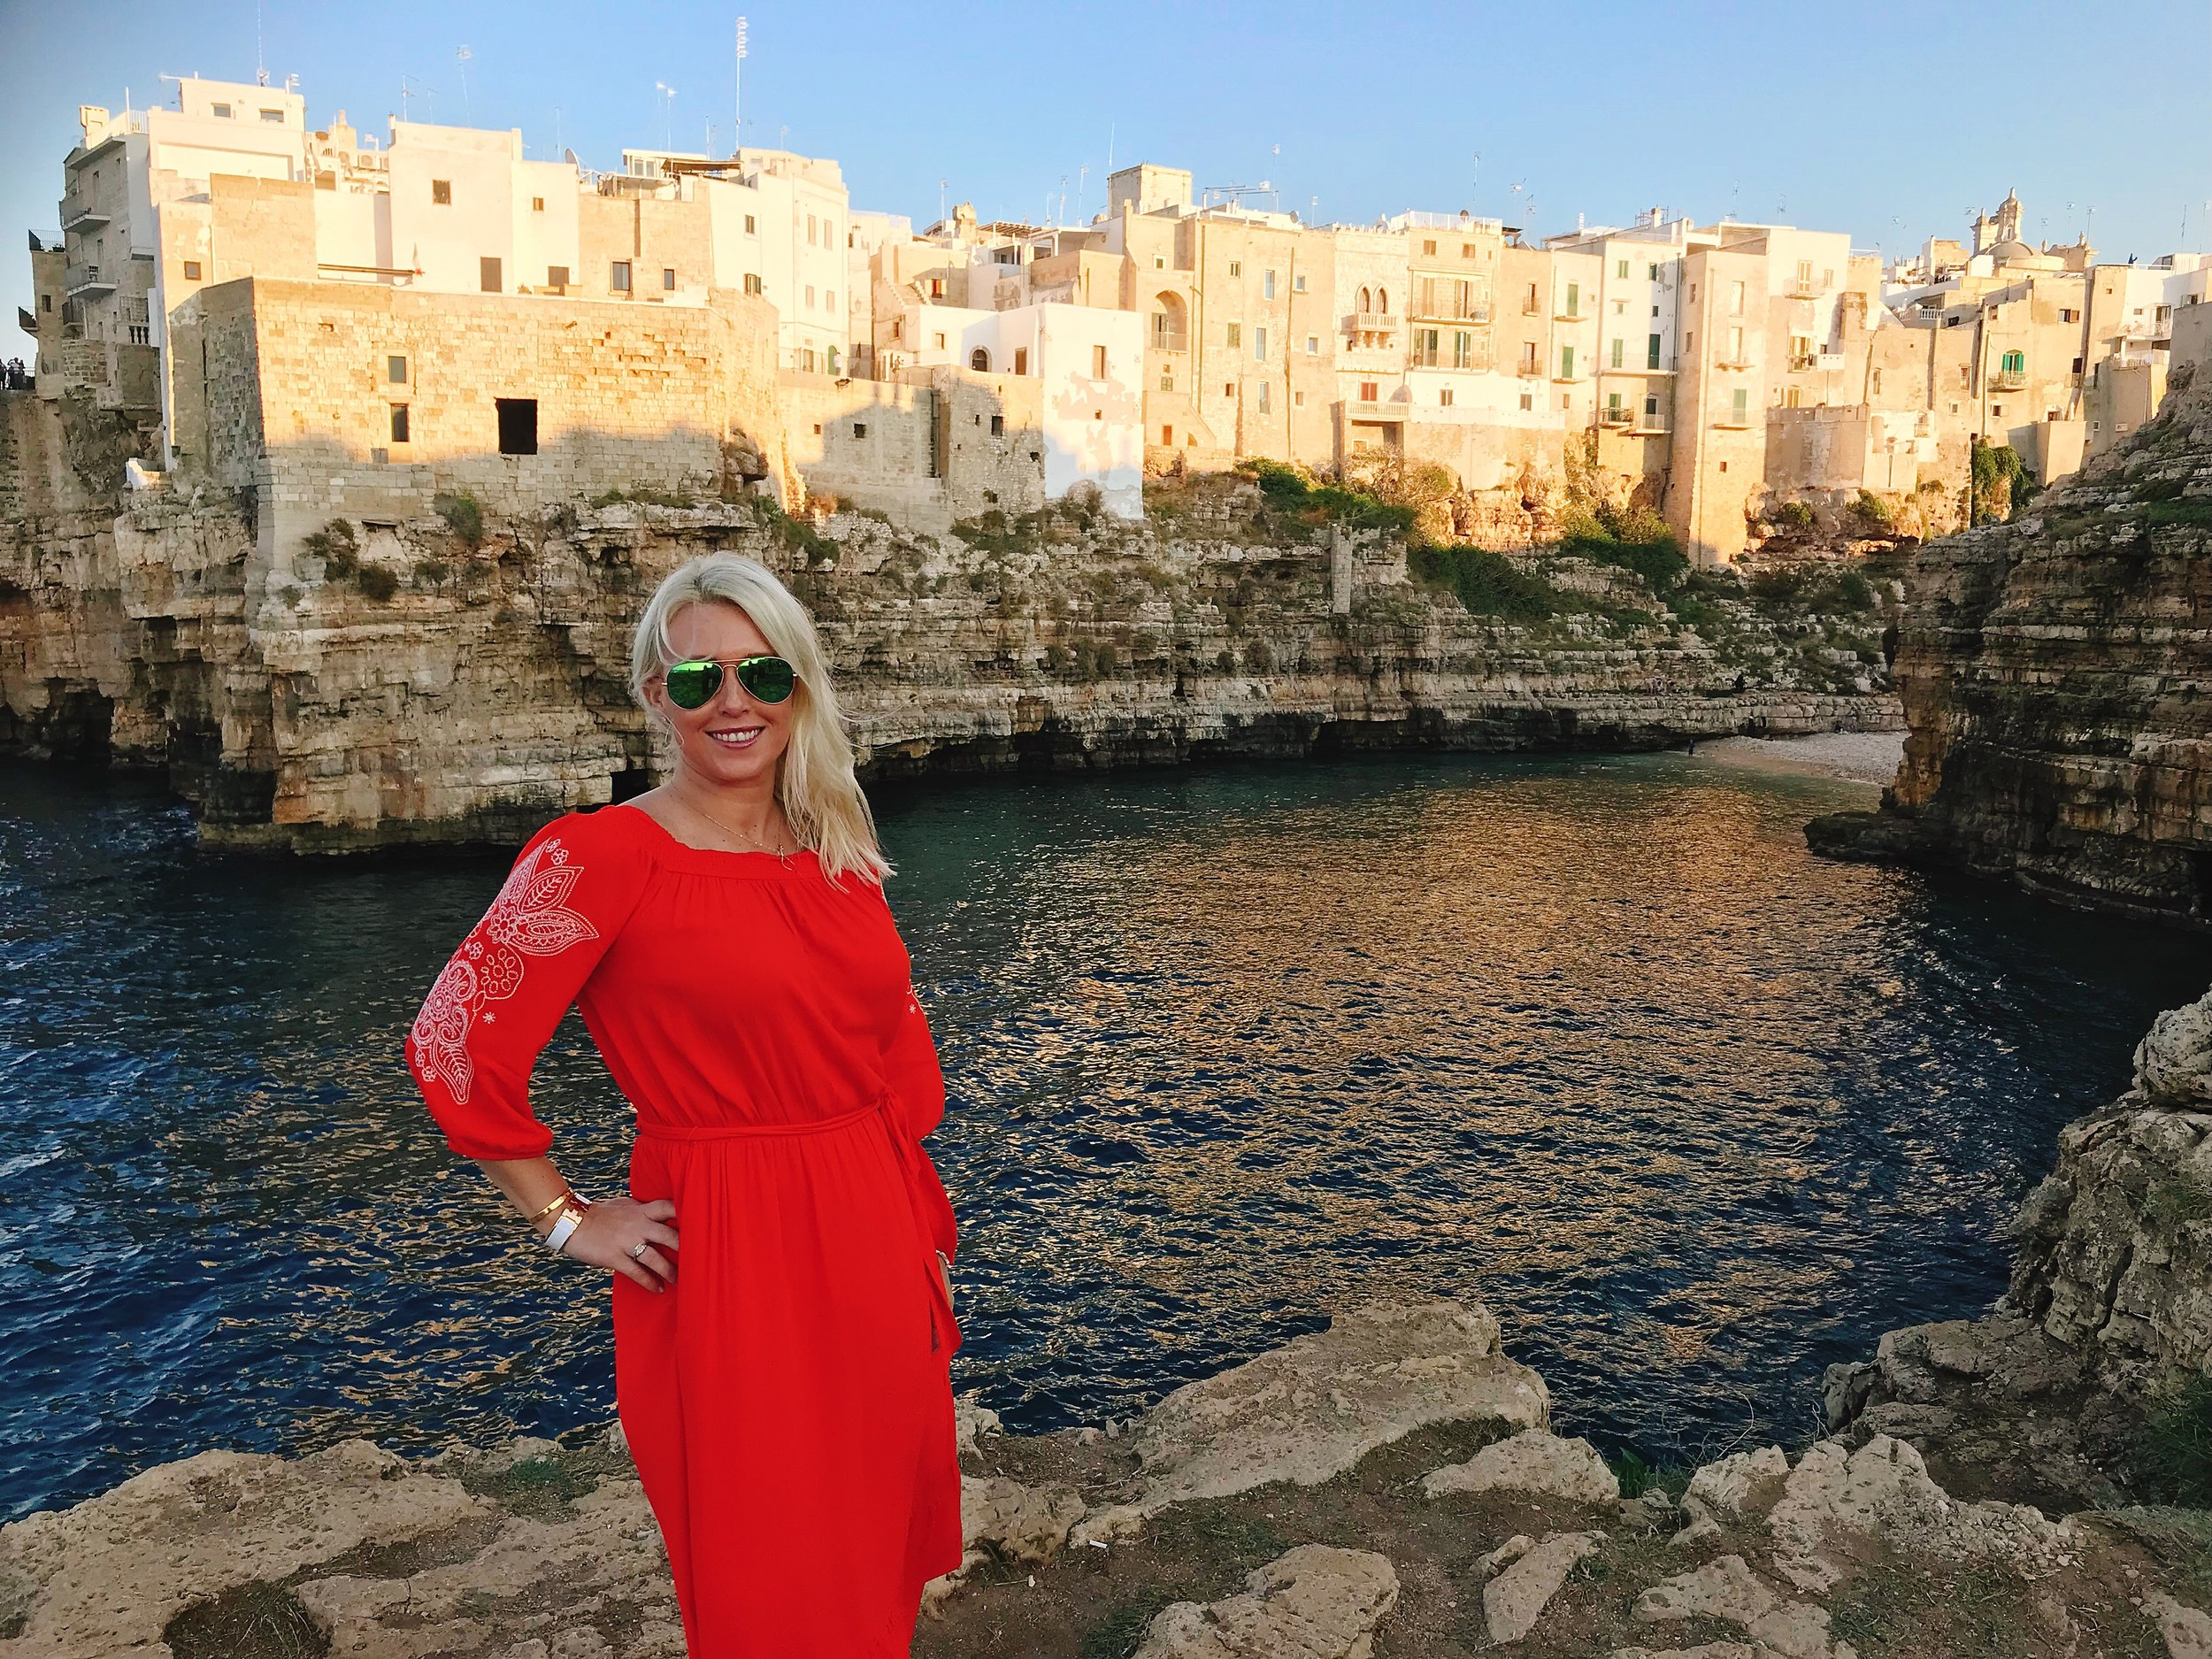 Polignano a Mare: I couldn't say no to this background!